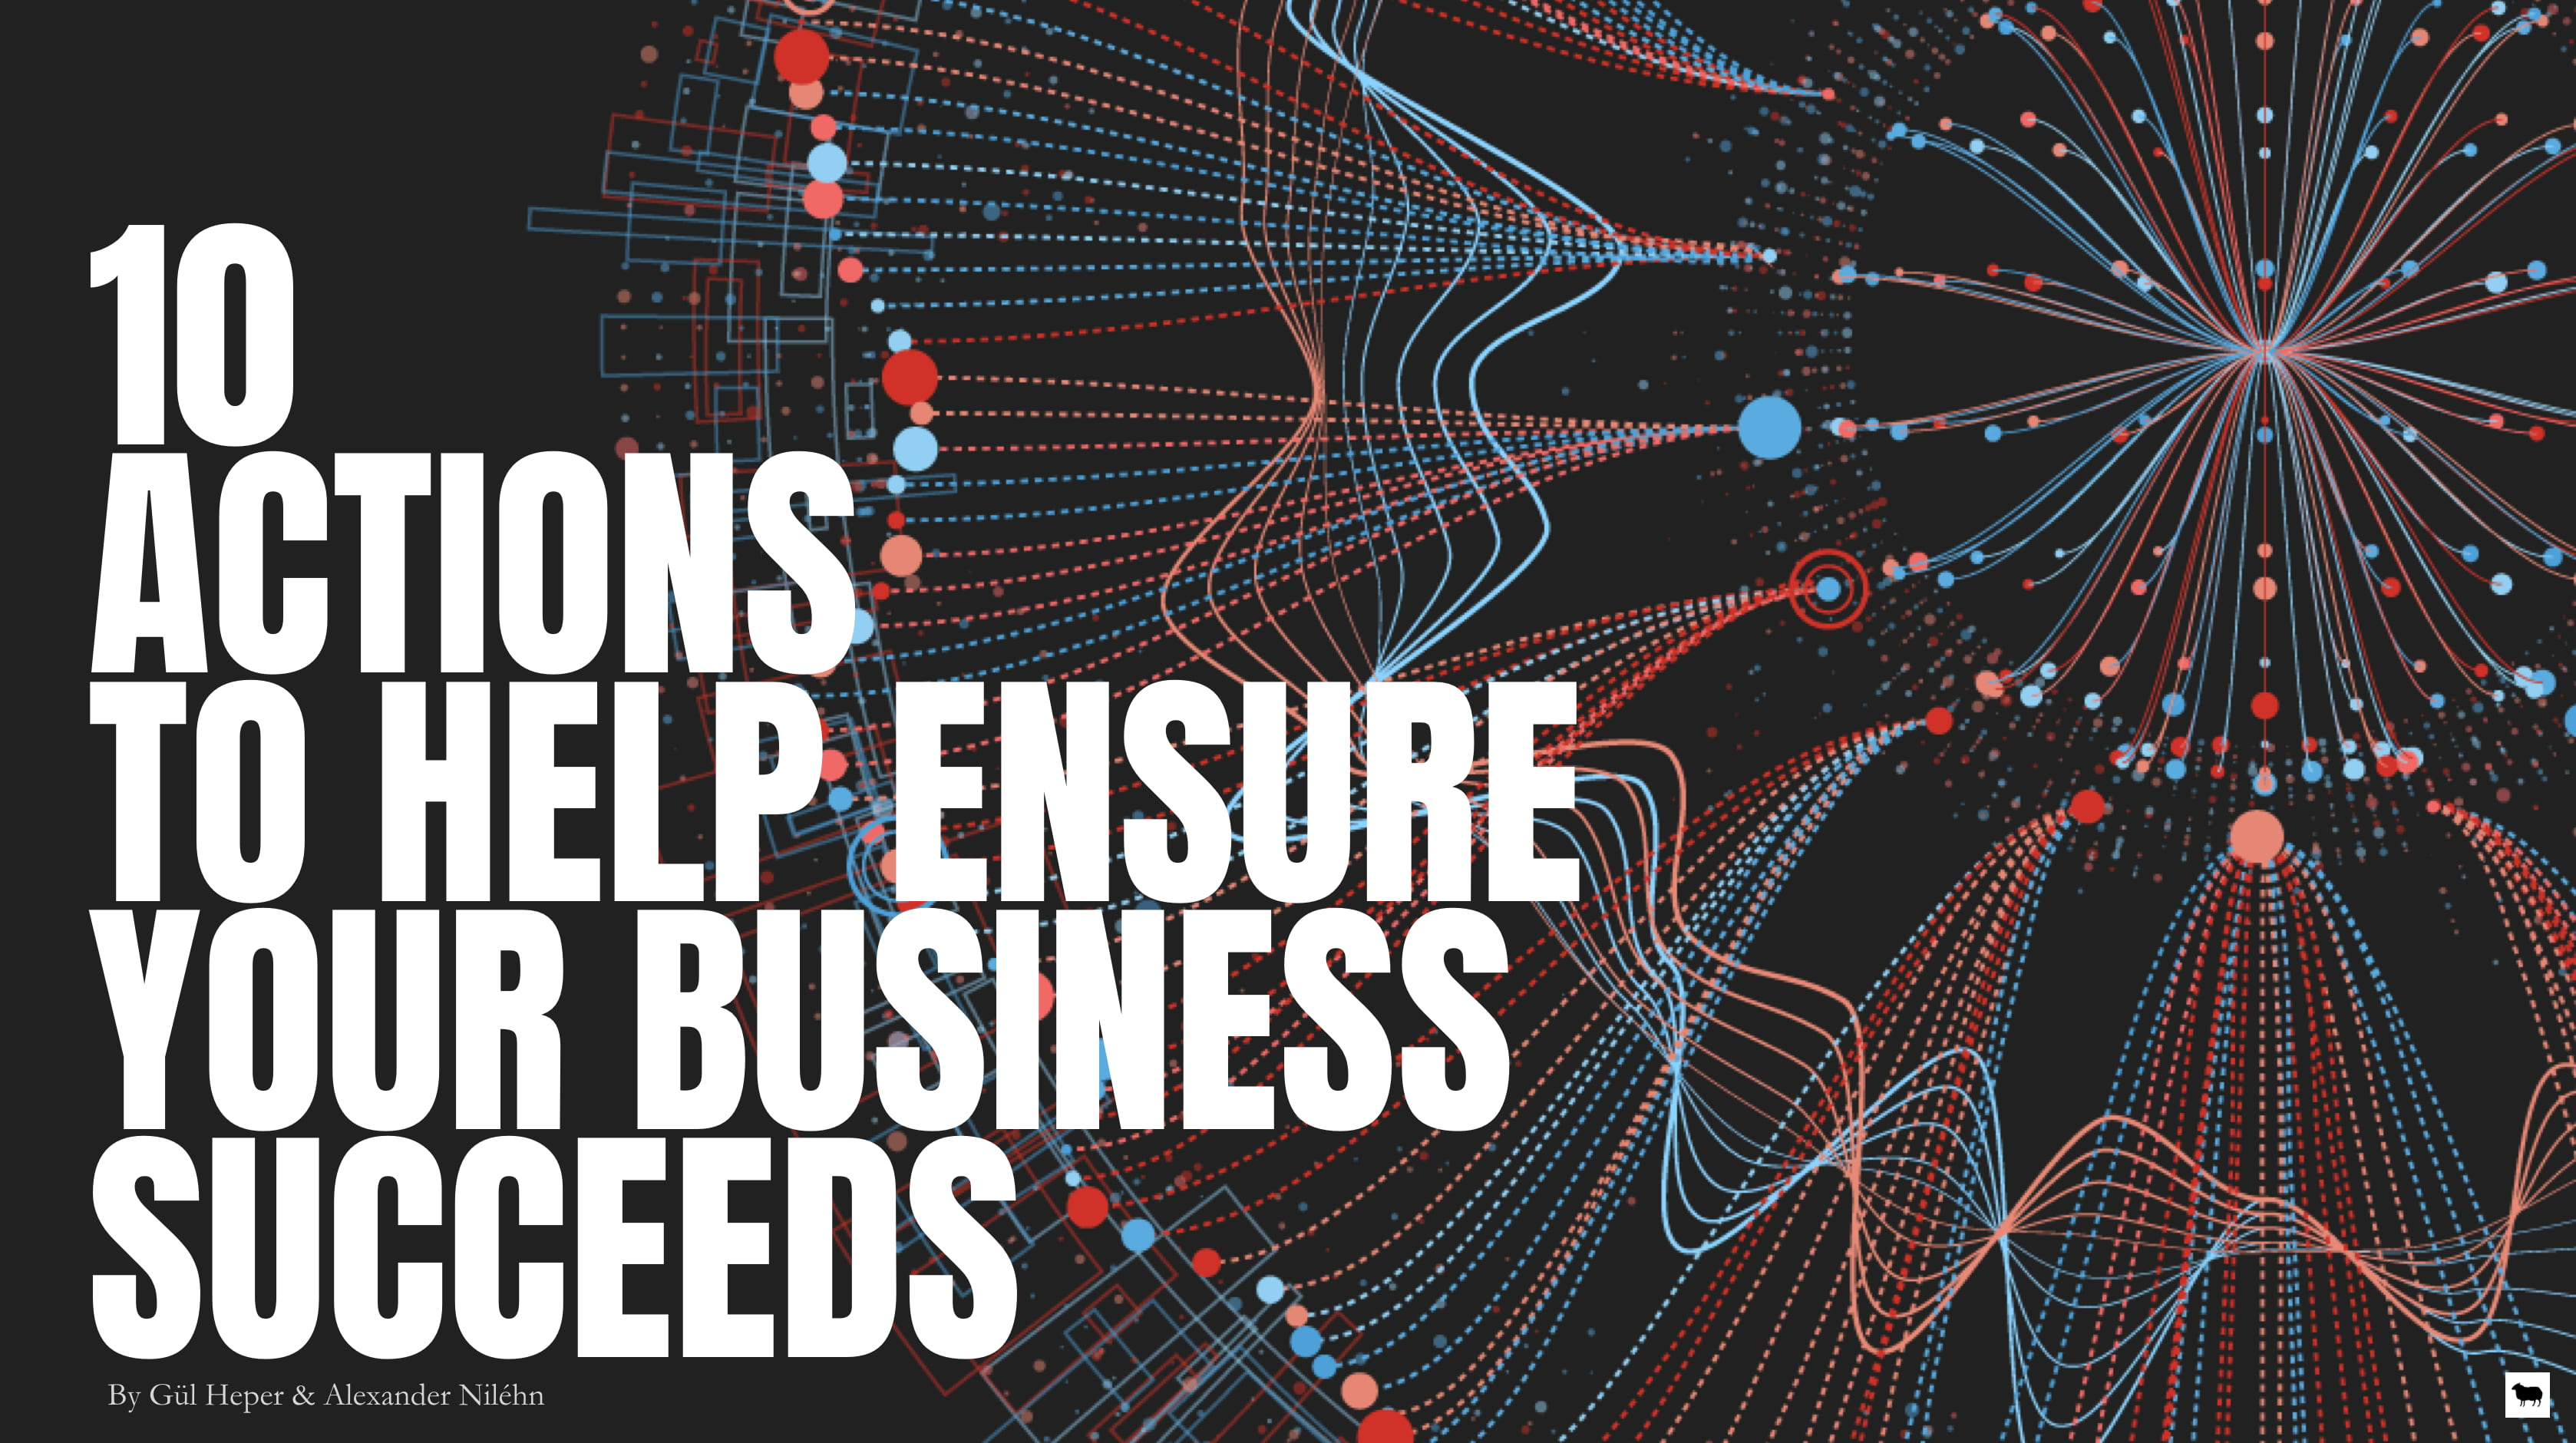 Slideshare | 10 Actions To Help Ensure Your Business Succeeds